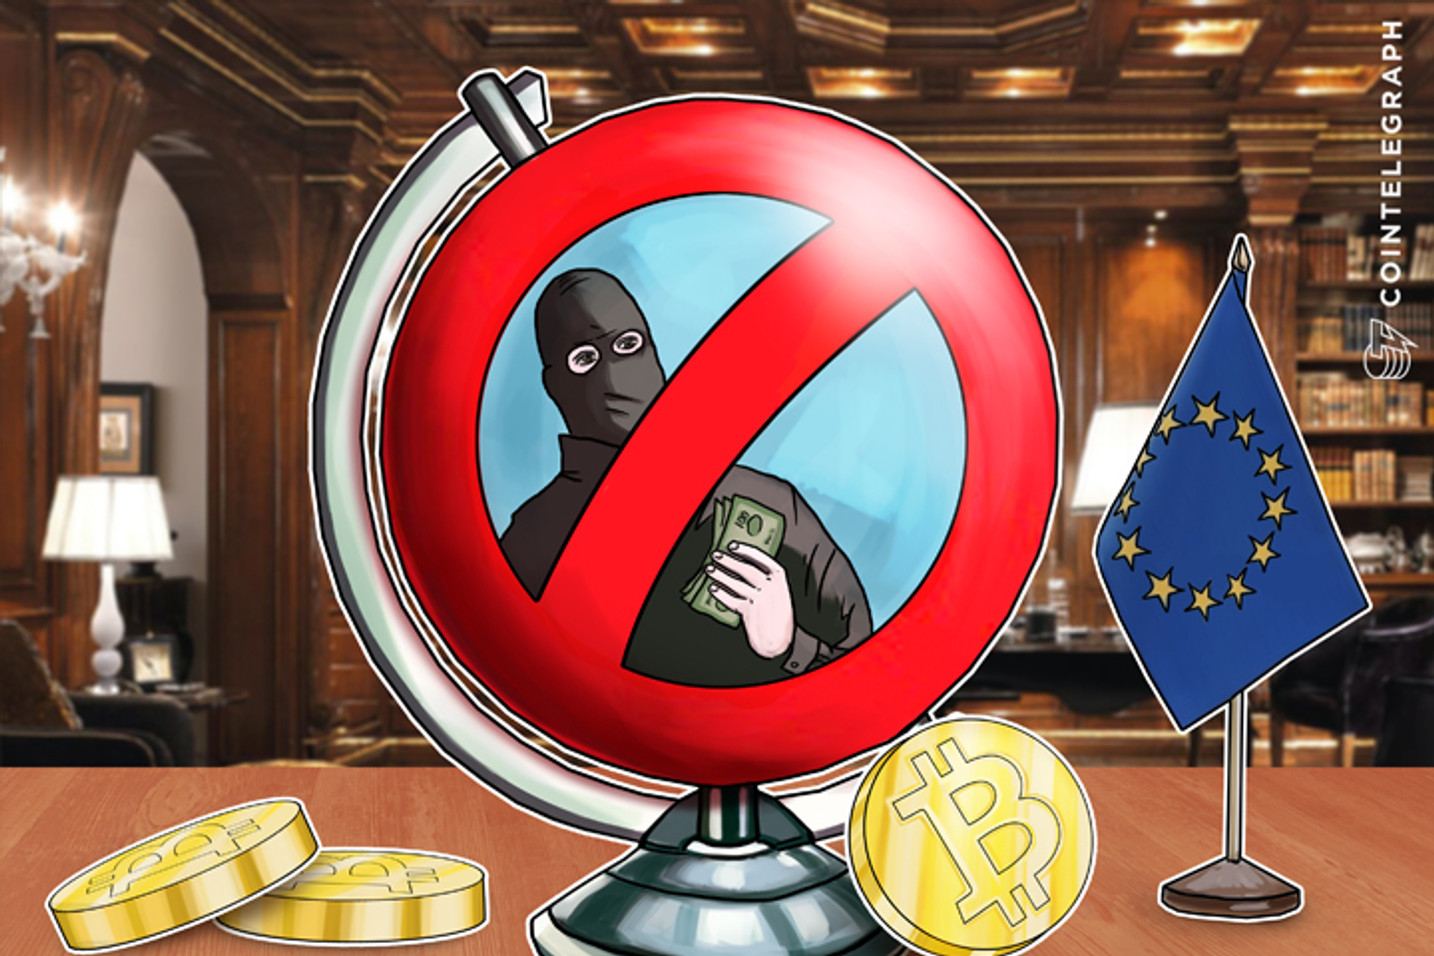 EU to Tighten Cash & Gold Controls, Surge in Bitcoin Demand Will Follow